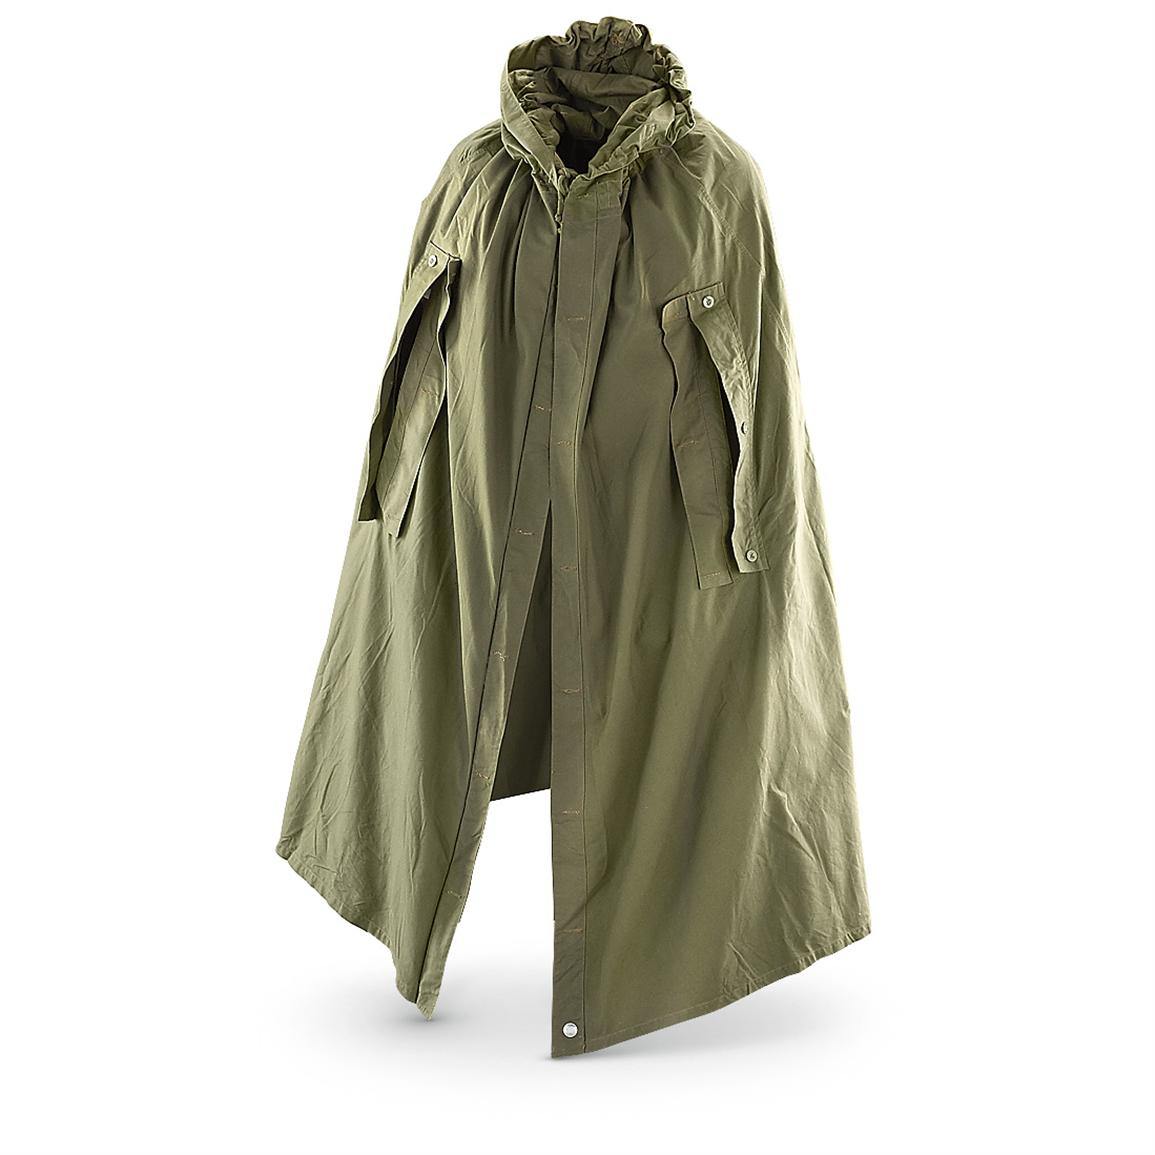 Philosophizing with a Hammer: My Favorite Rain Gear